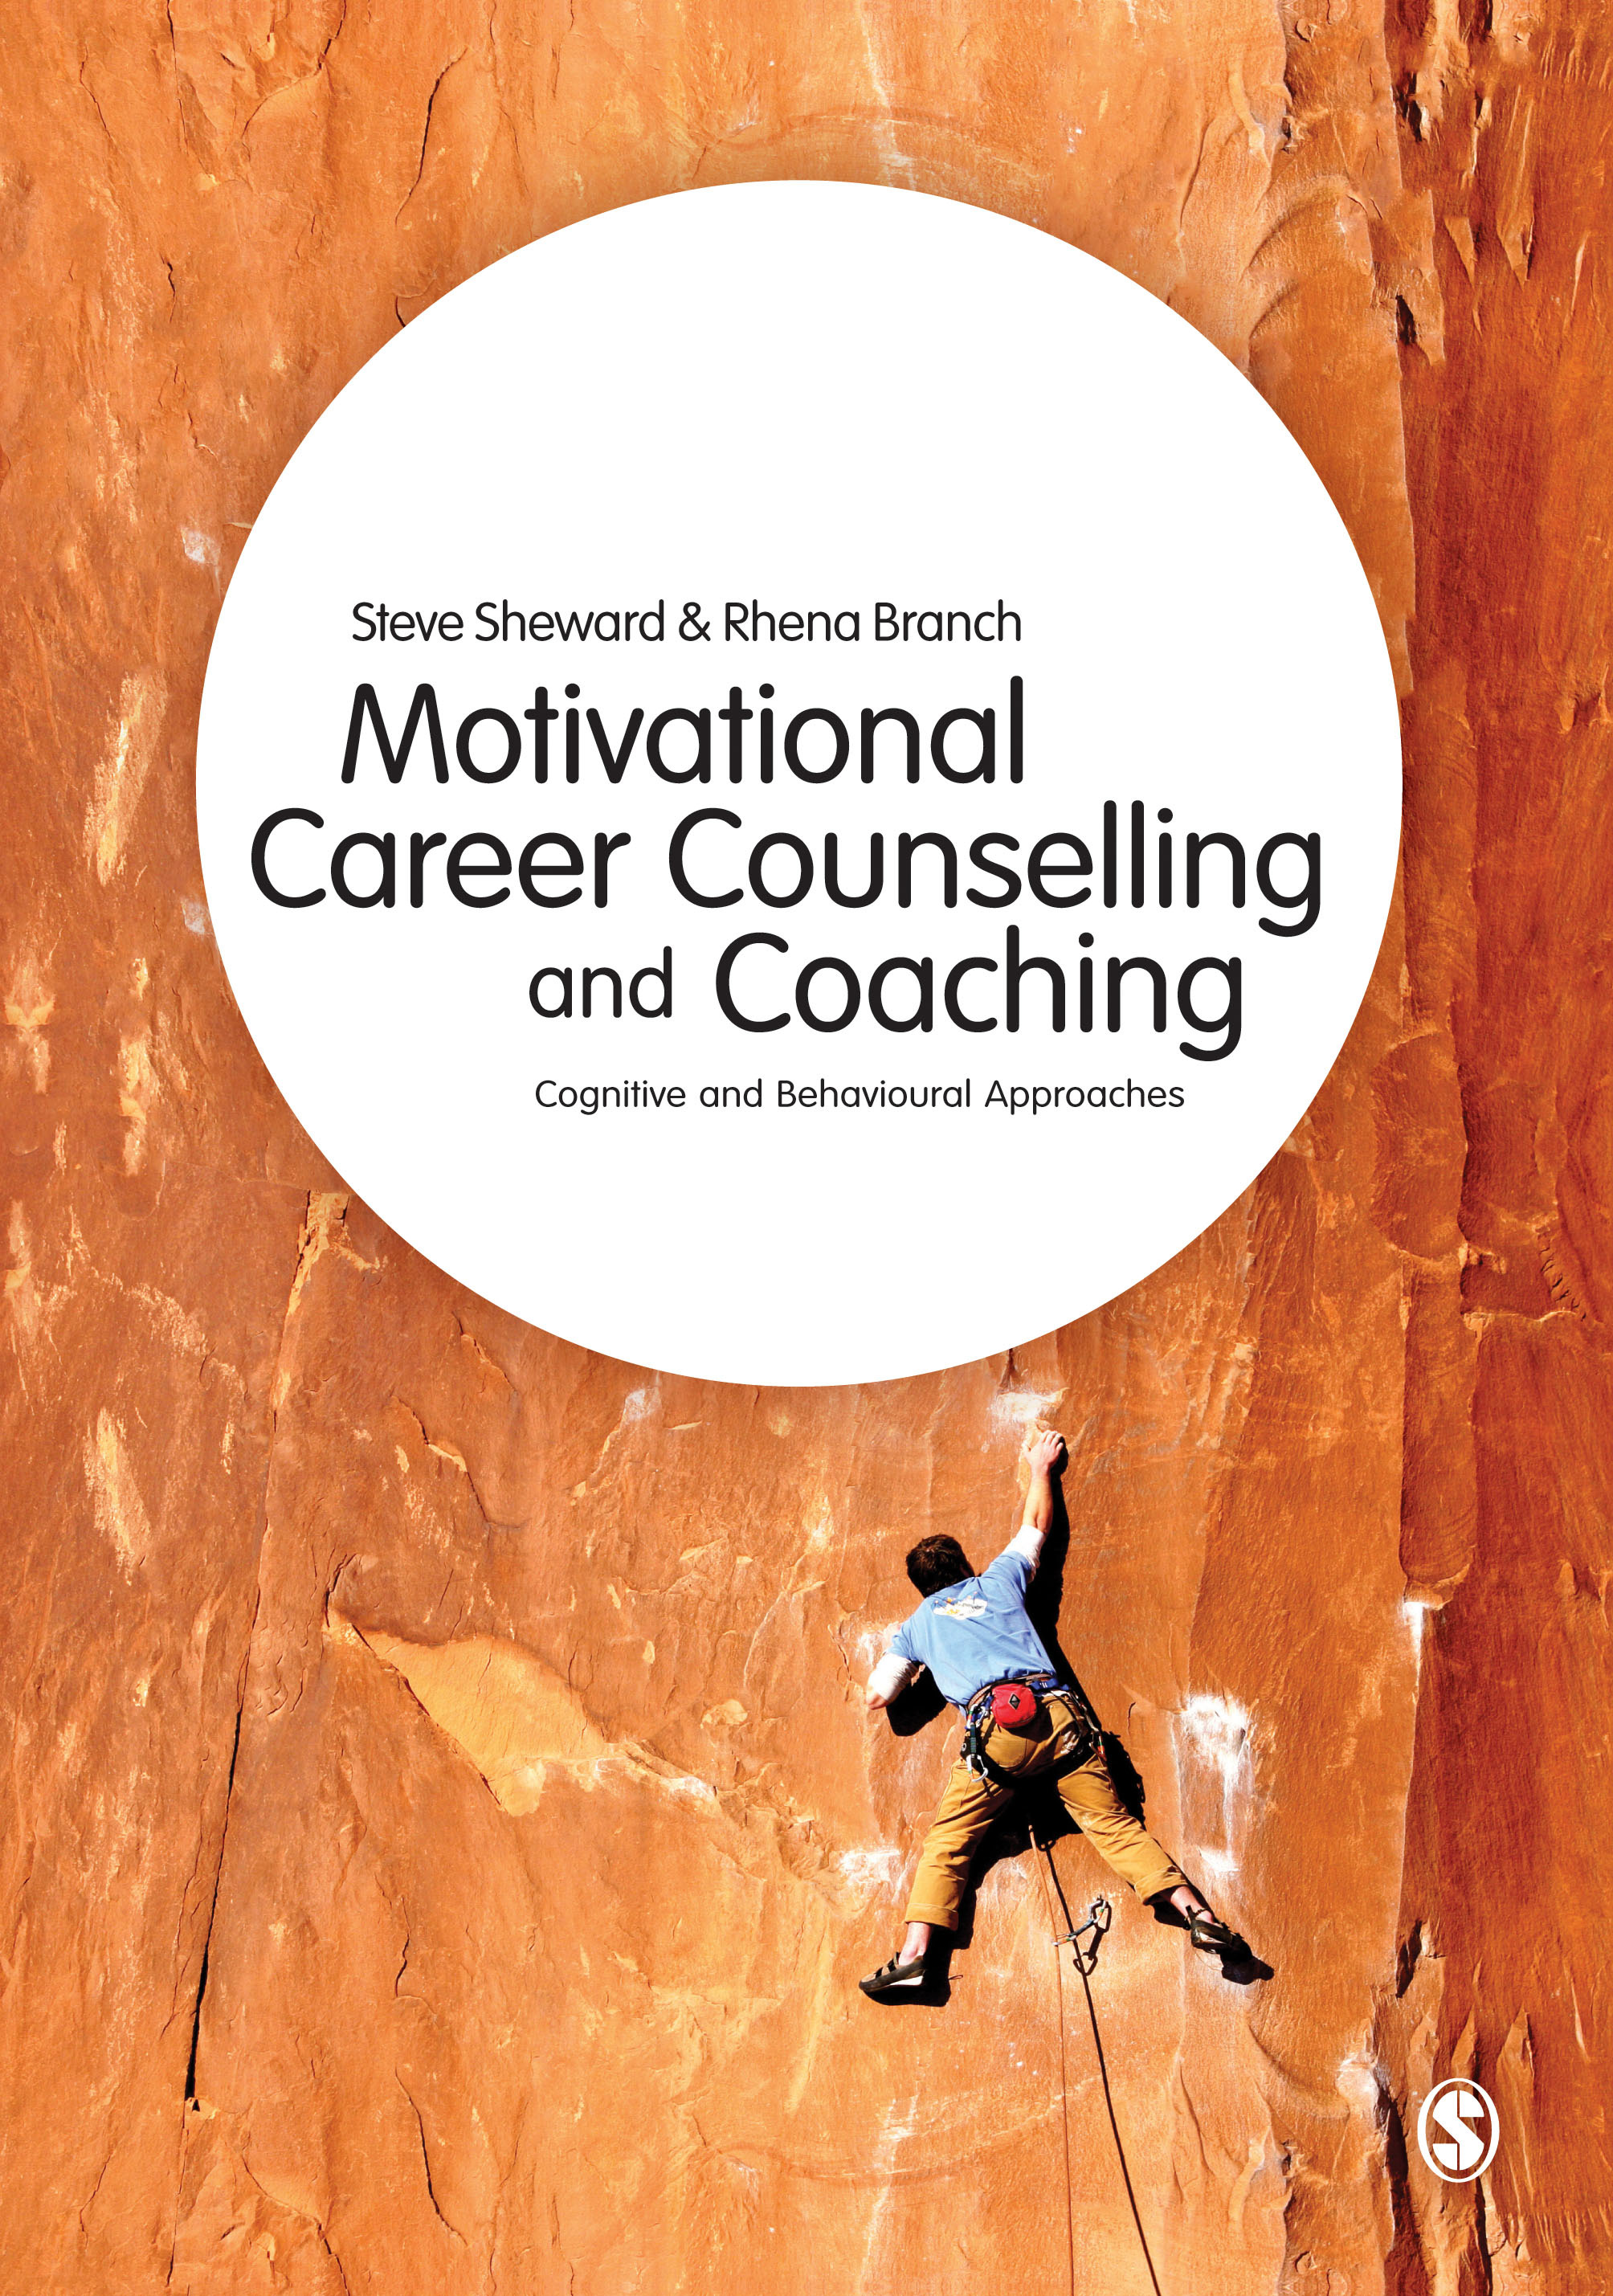 Motivational Career Counselling and Coaching: Cognitive and Behavioural Approaches cover image